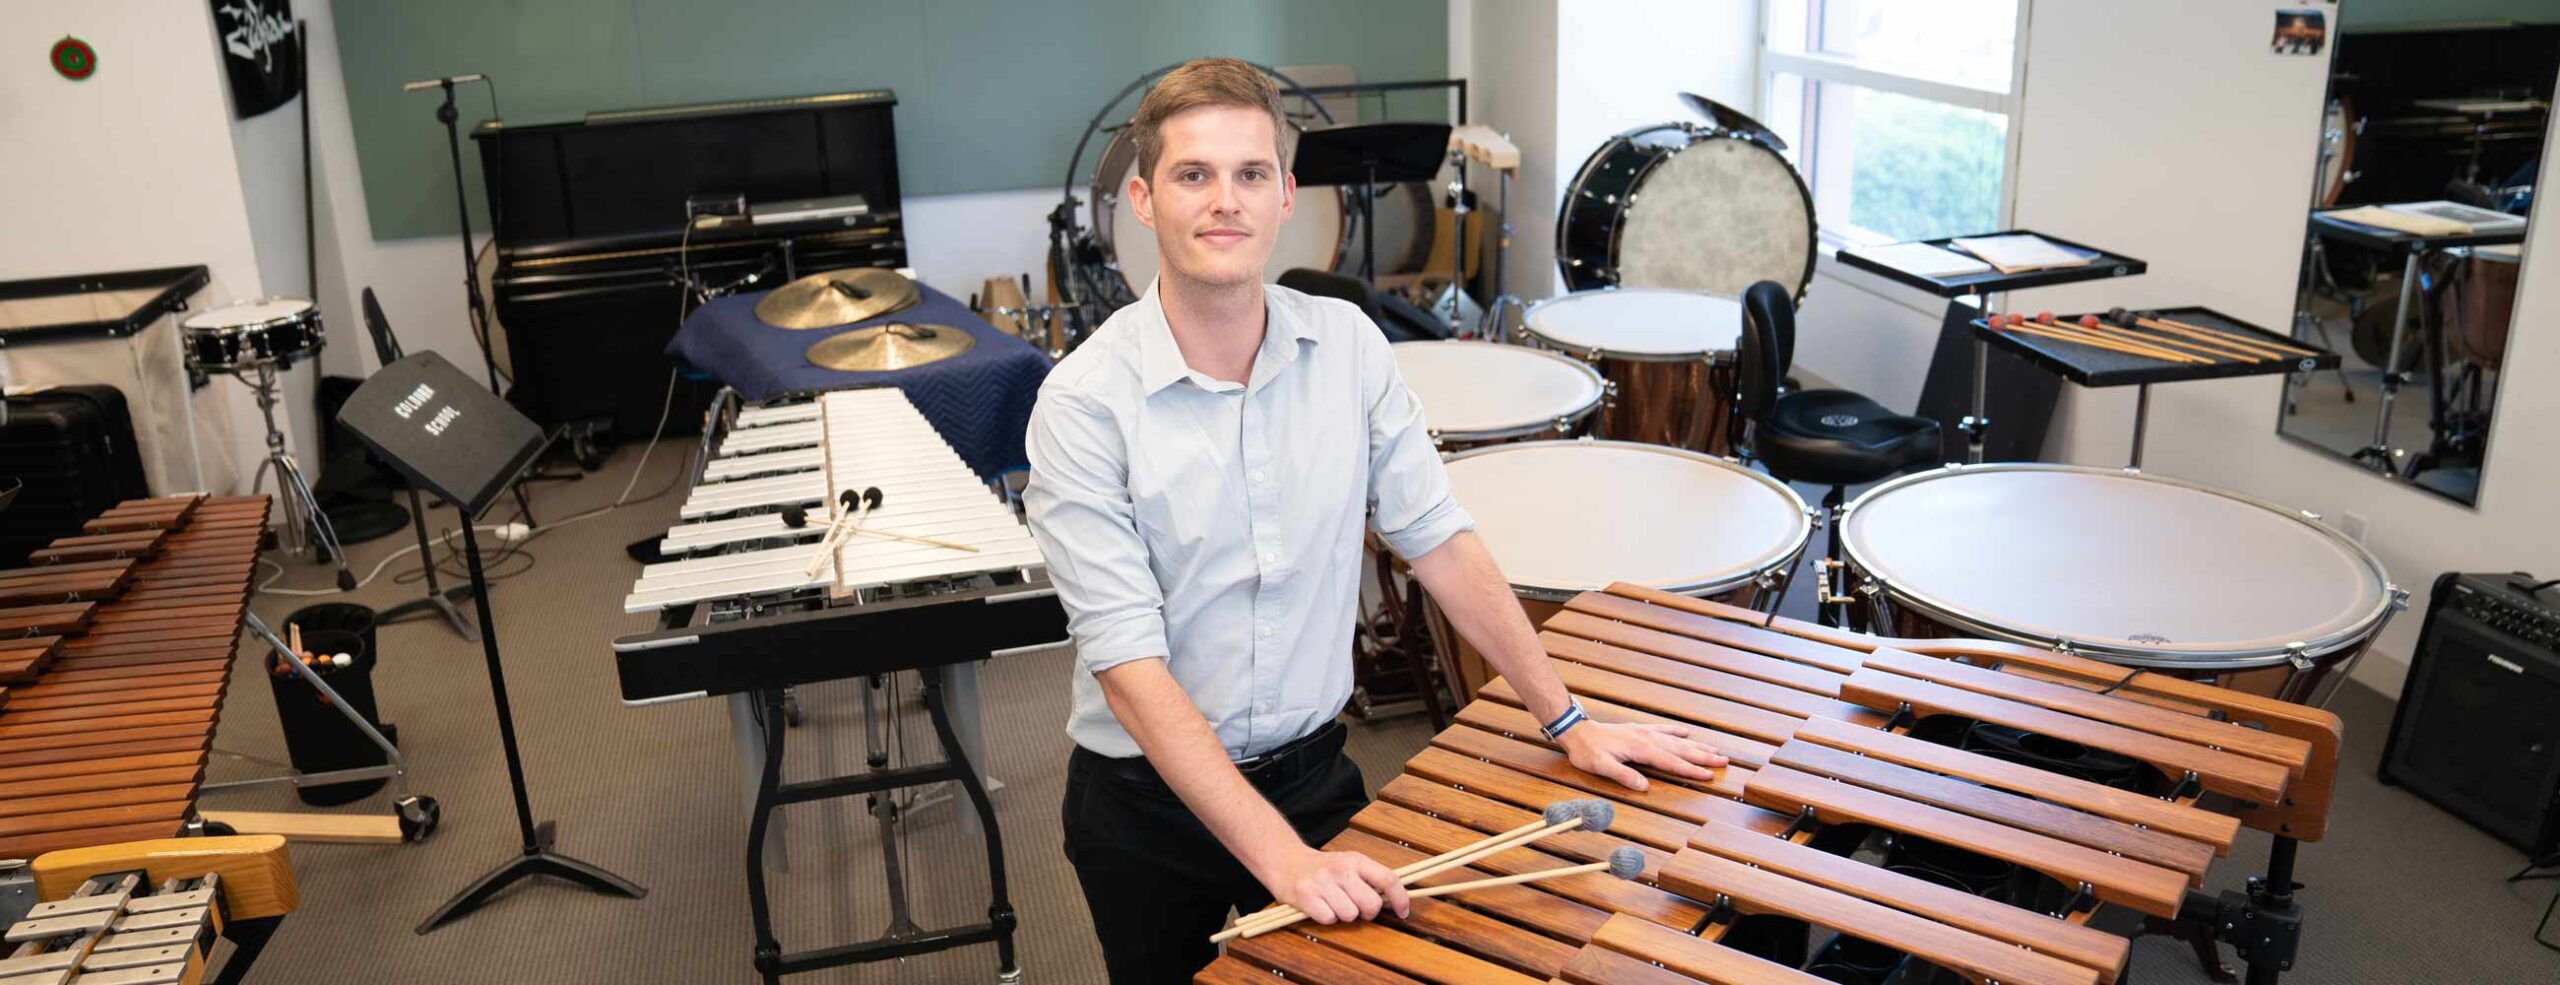 Percussionist with mallets sitting down around marimbas and timpani